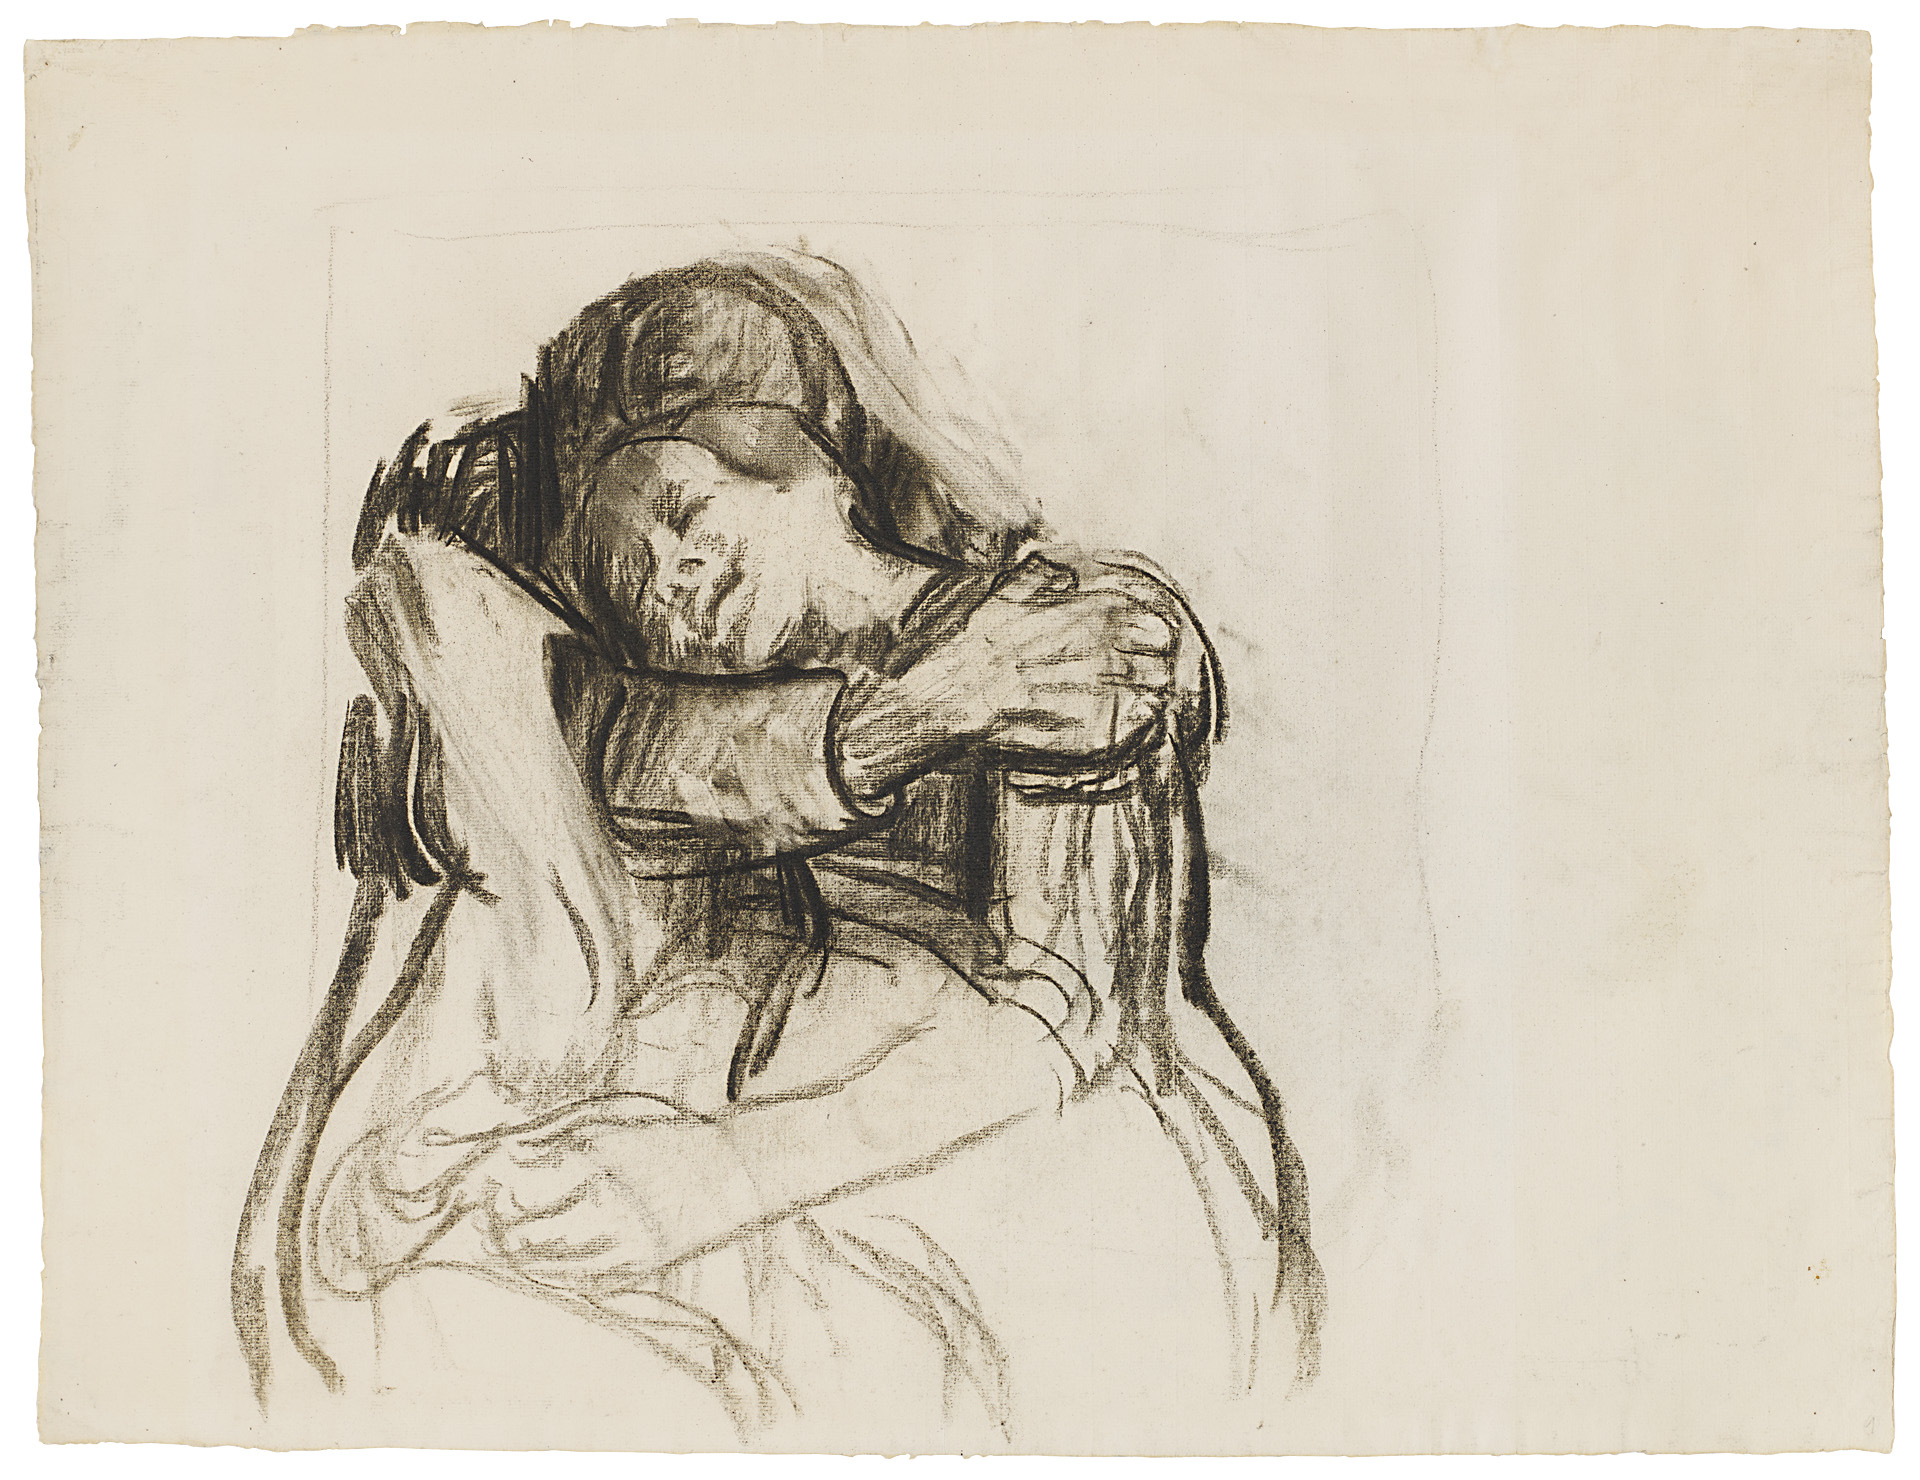 Käthe Kollwitz, The Embrace, c 1909/1910, charcoal drawing, partly blotted, on yellowish laid paper, NT (559a), Cologne Kollwitz Collection © Käthe Kollwitz Museum Köln